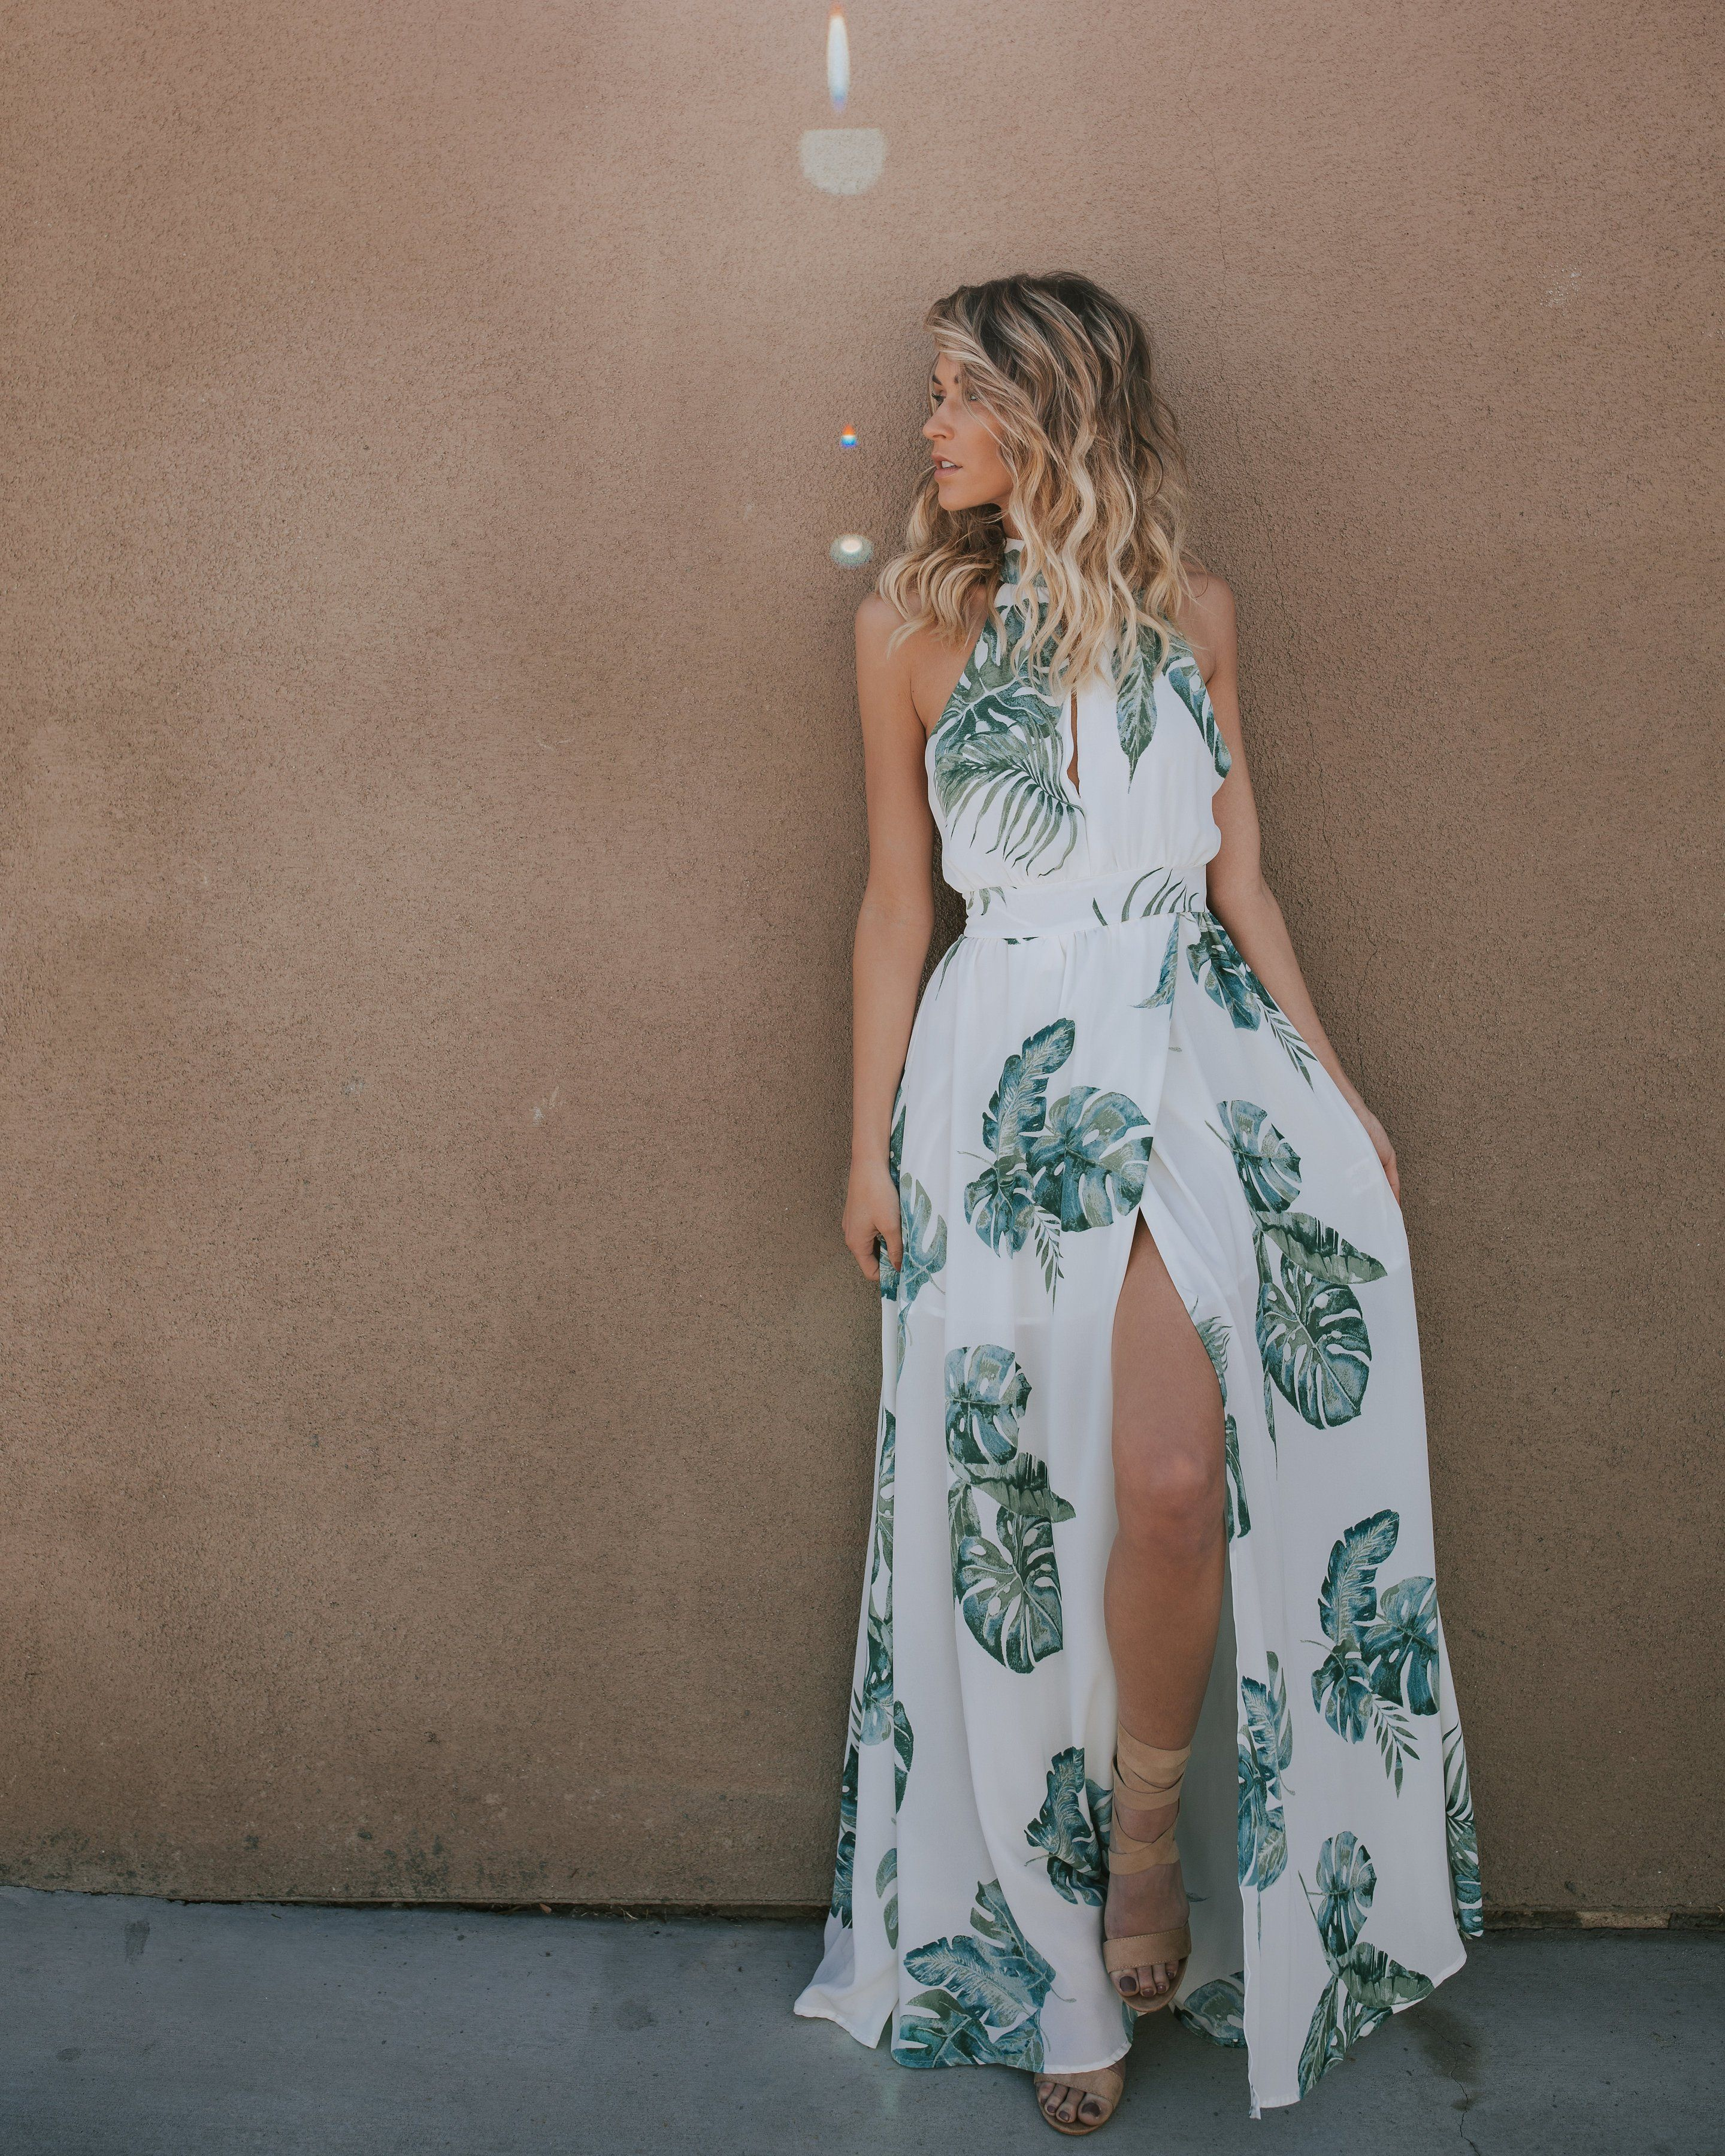 Pin By Siena Smith On Dresses Semi Formal Maxi Dress Dresses Tropical Outfit [ 3600 x 2880 Pixel ]